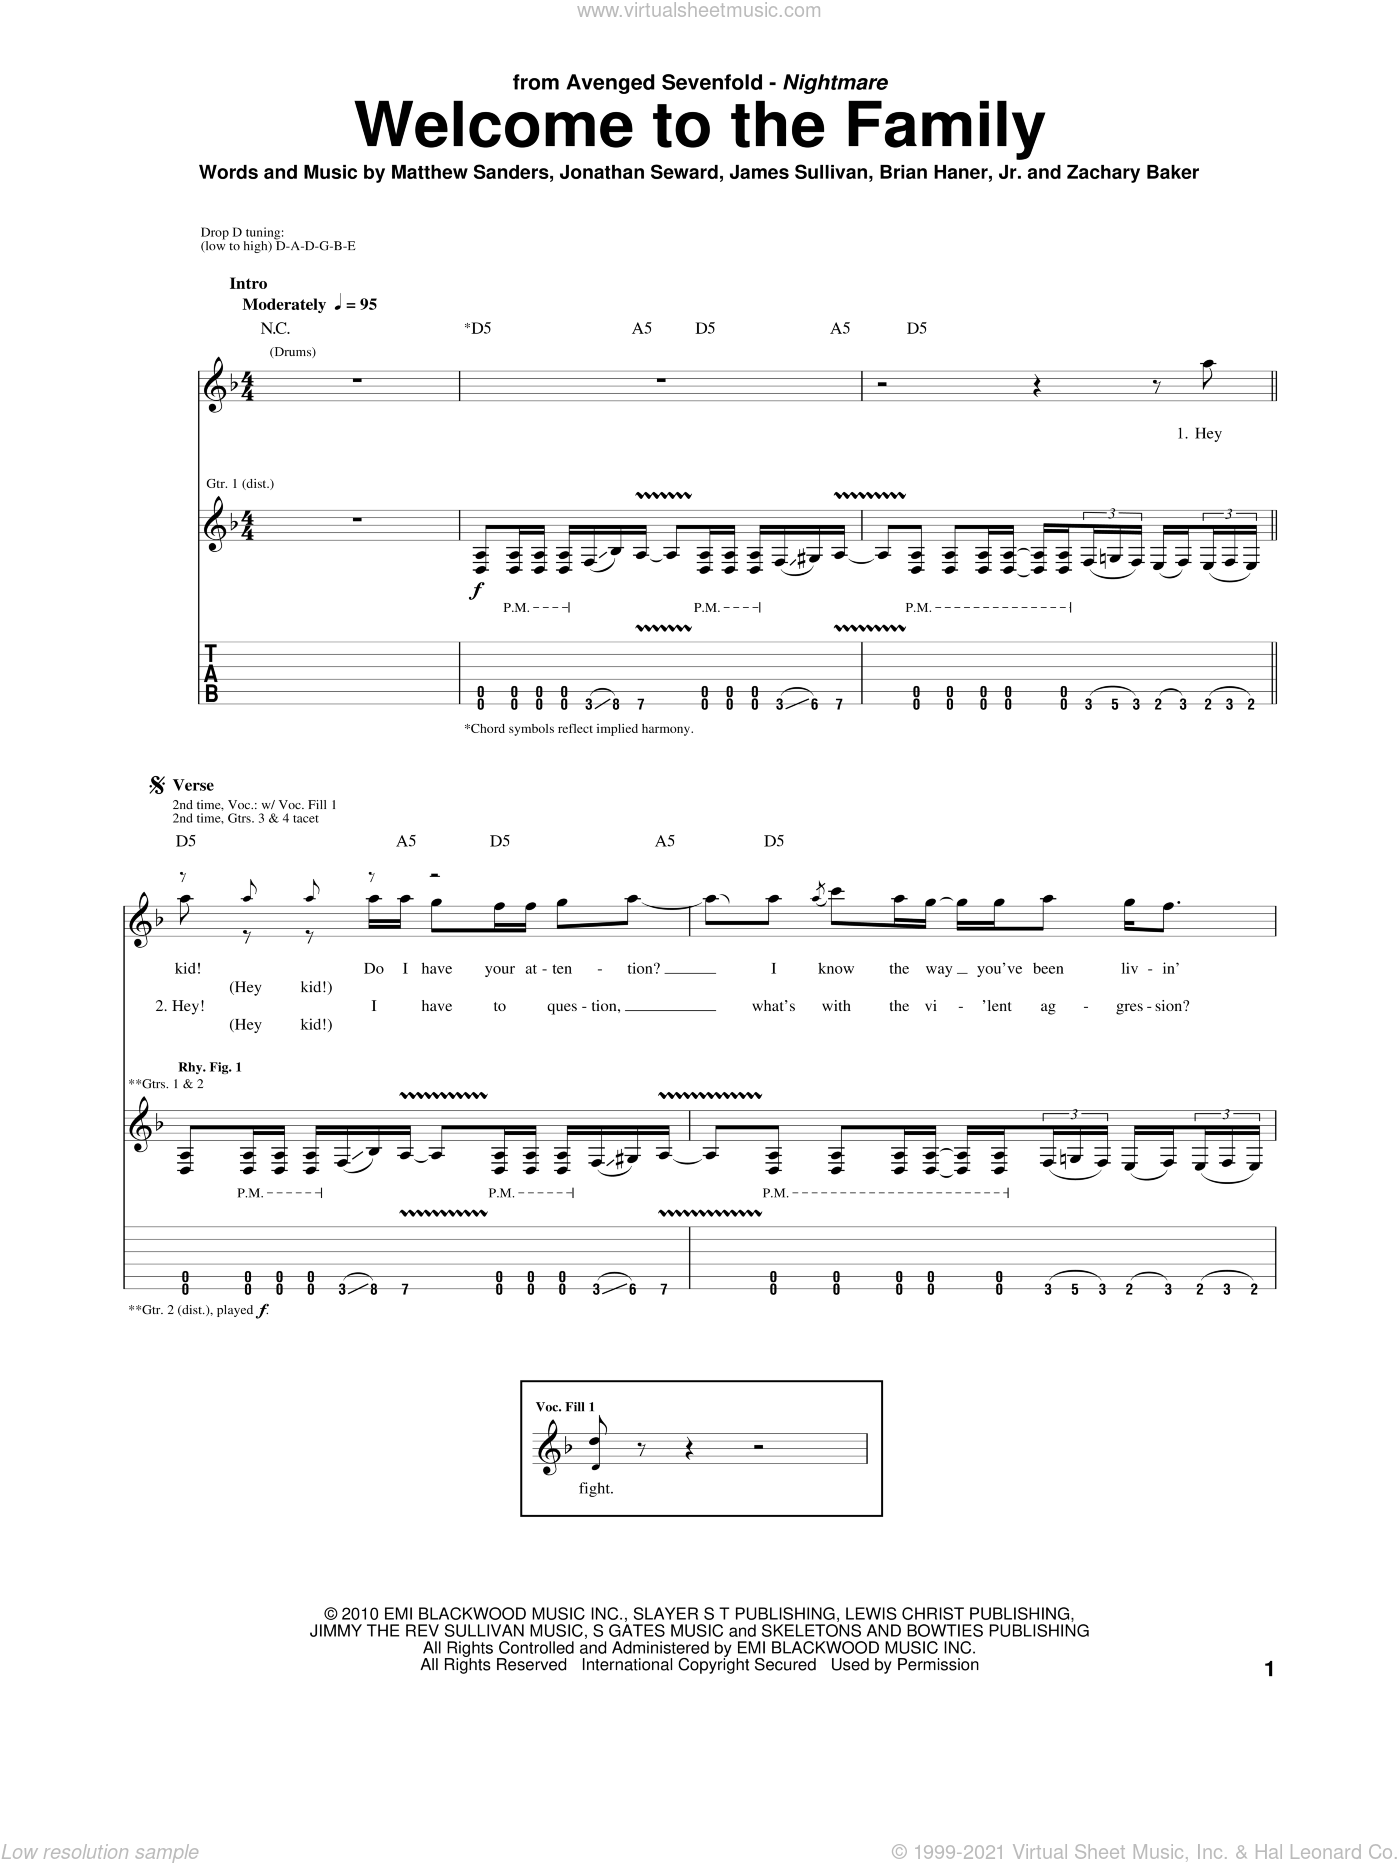 Welcome To The Family sheet music for guitar (tablature) by Avenged Sevenfold, Brian Haner, Jr., James Sullivan, Jonathan Seward, Matthew Sanders and Zachary Baker, intermediate skill level